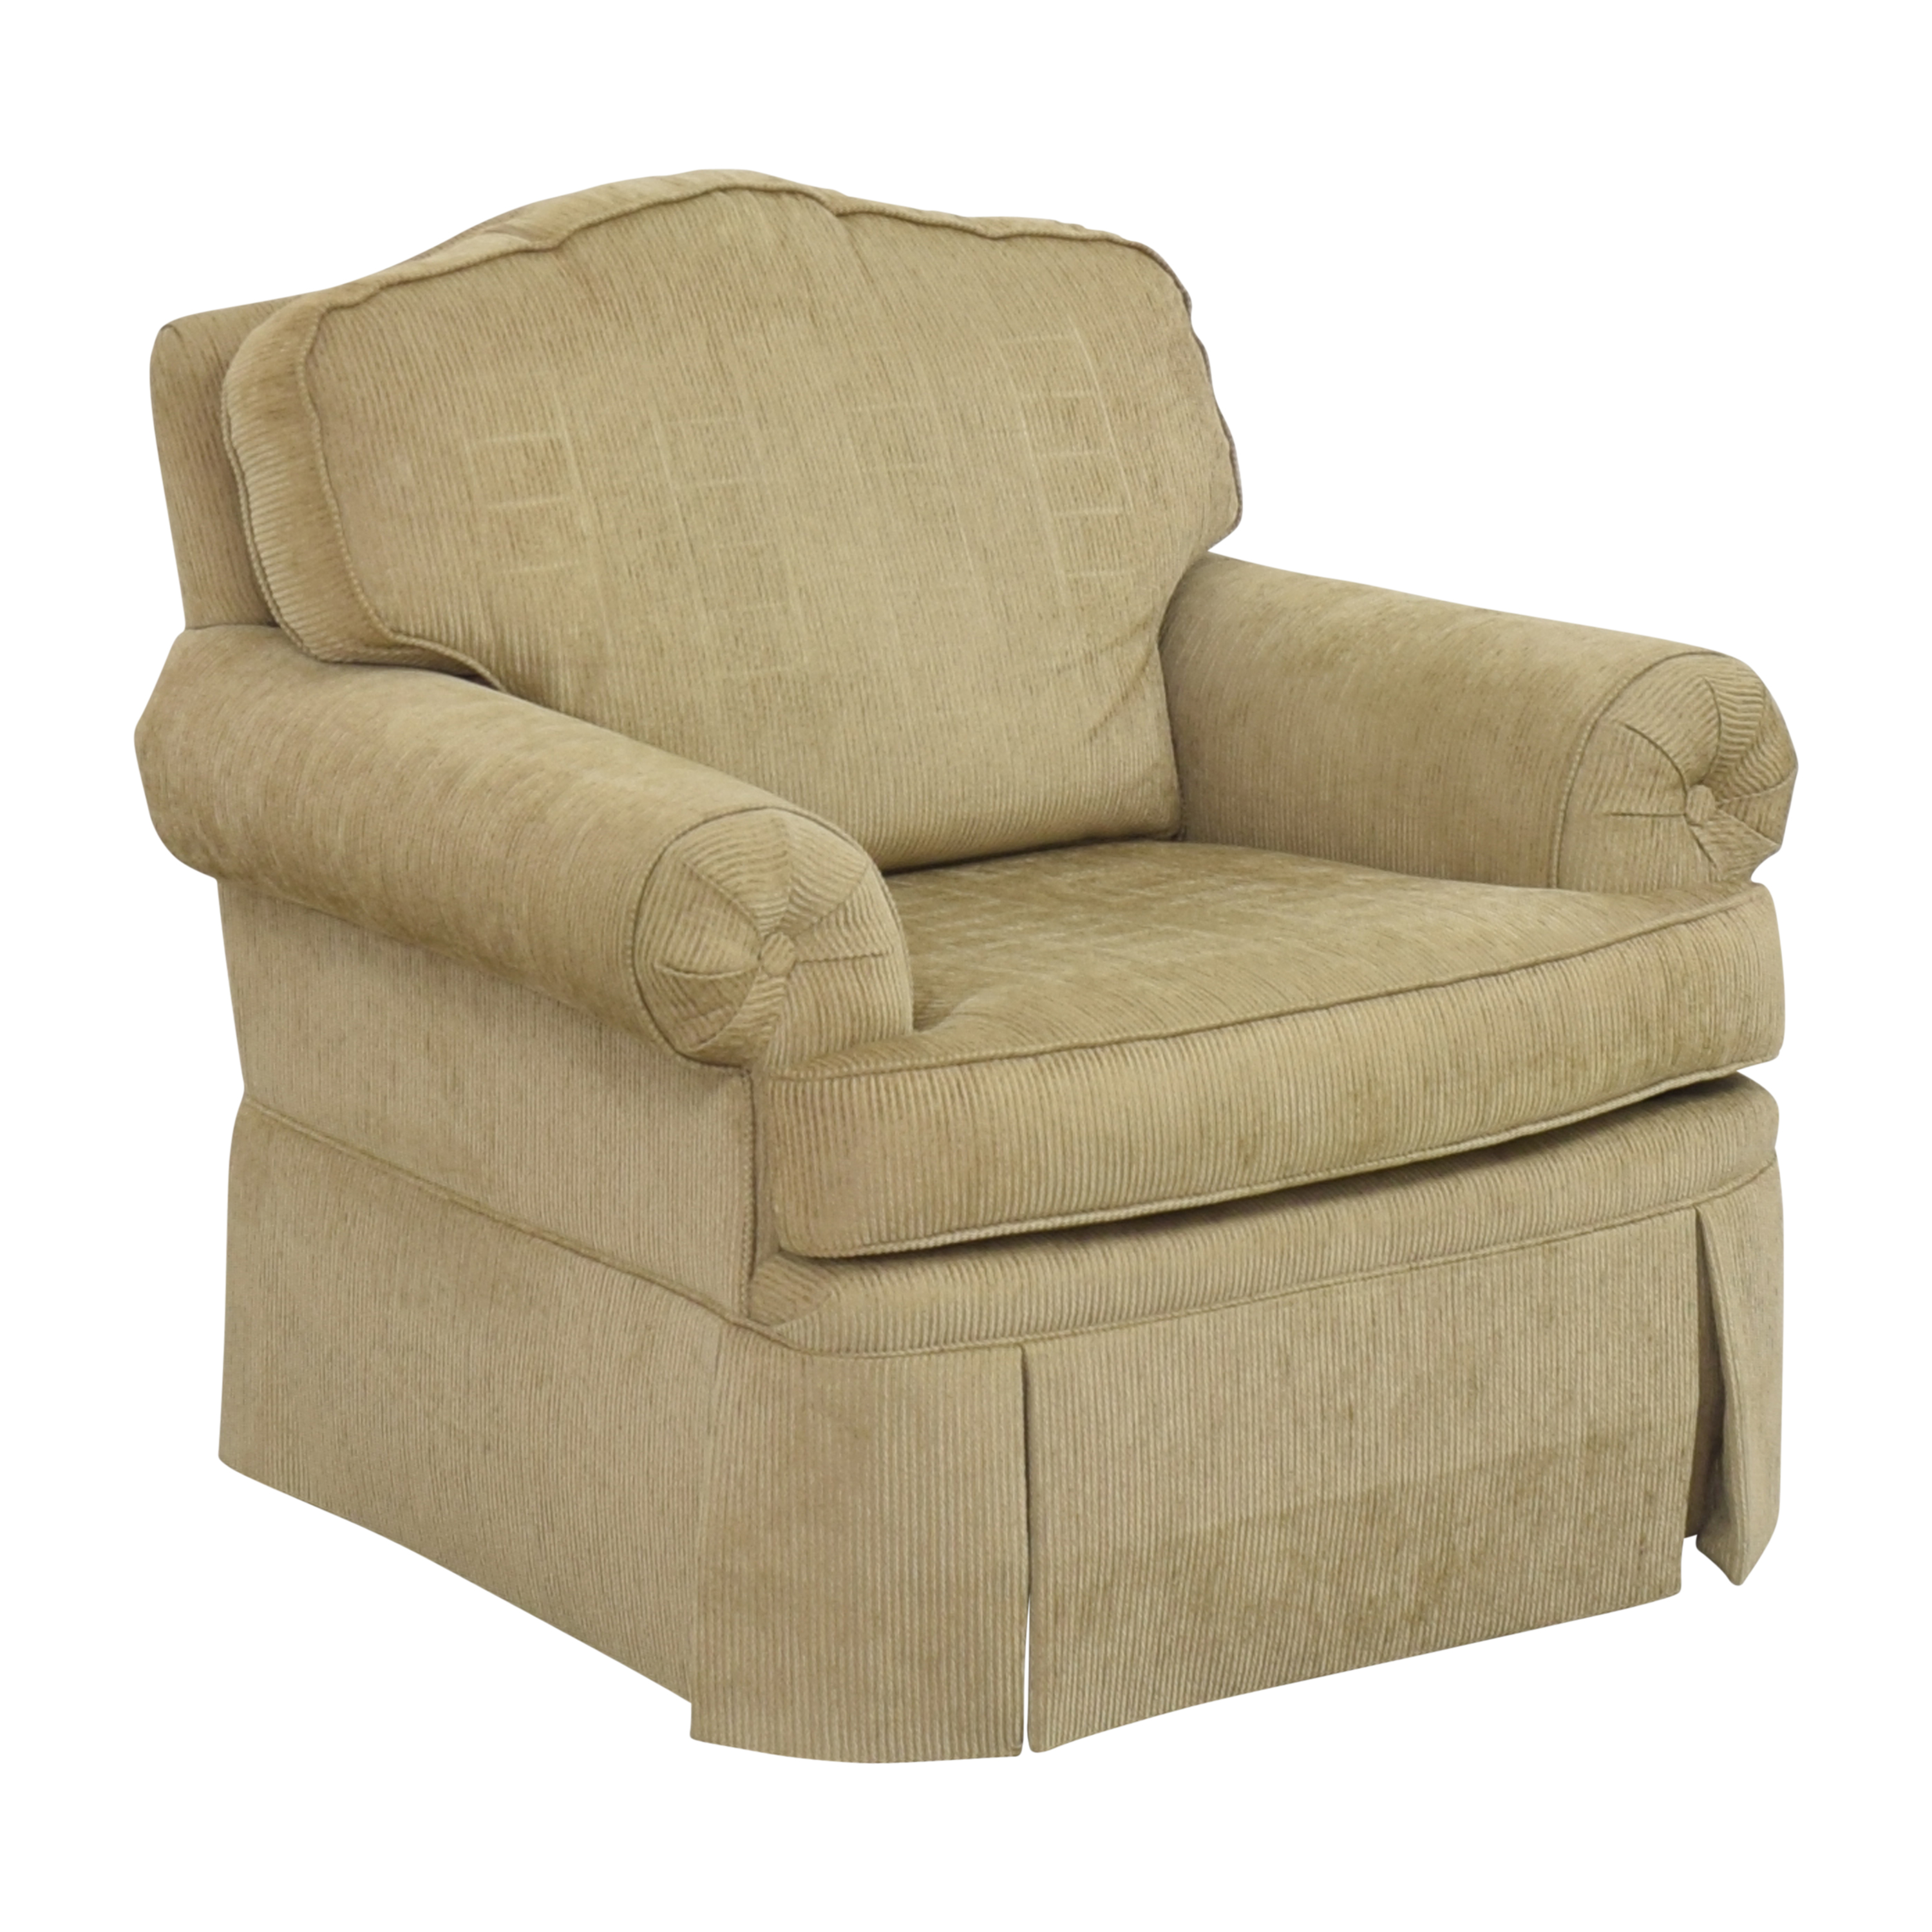 Drexel Heritage Drexel Heritage Skirted Club Chair Accent Chairs